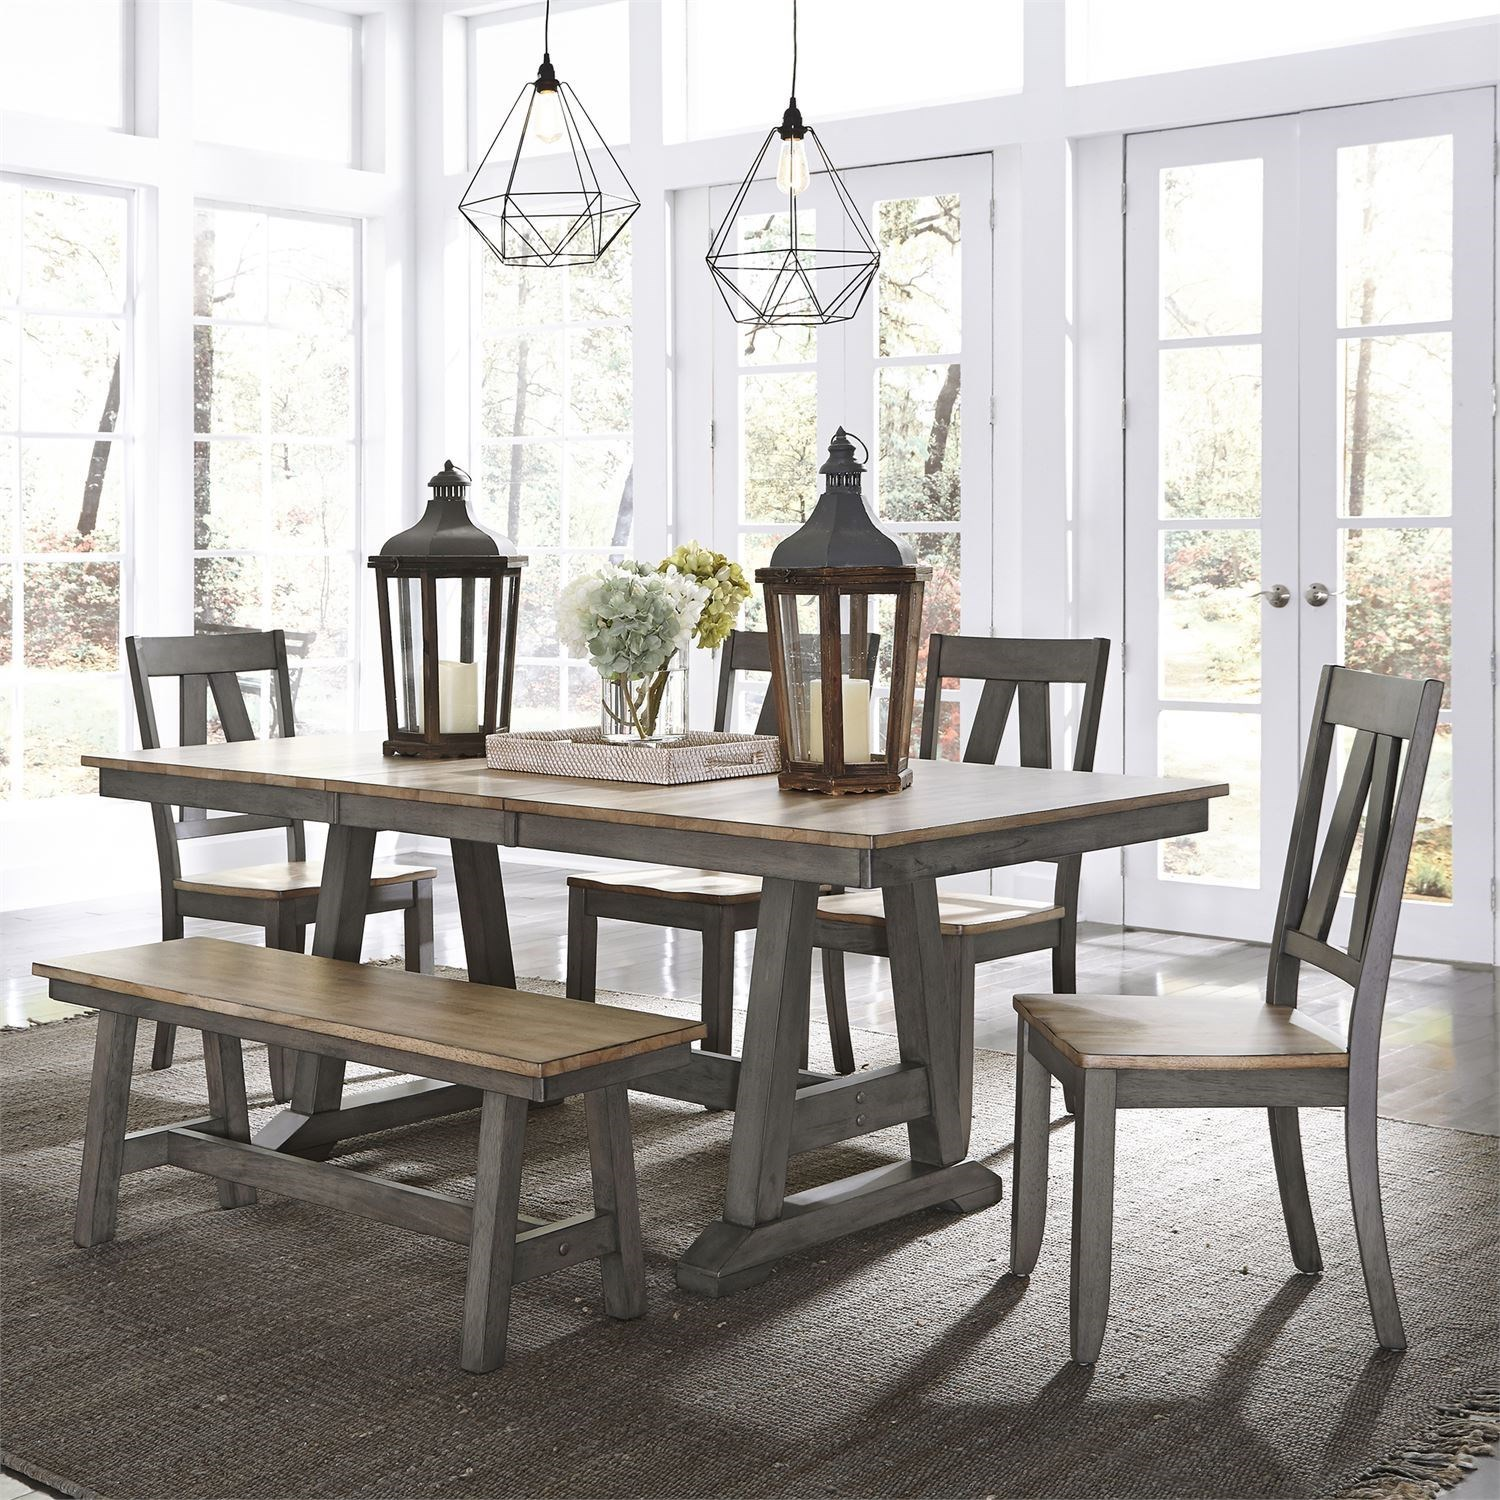 Lindsey Farm 6-Piece Trestle Table Set by Liberty Furniture at Rooms for Less